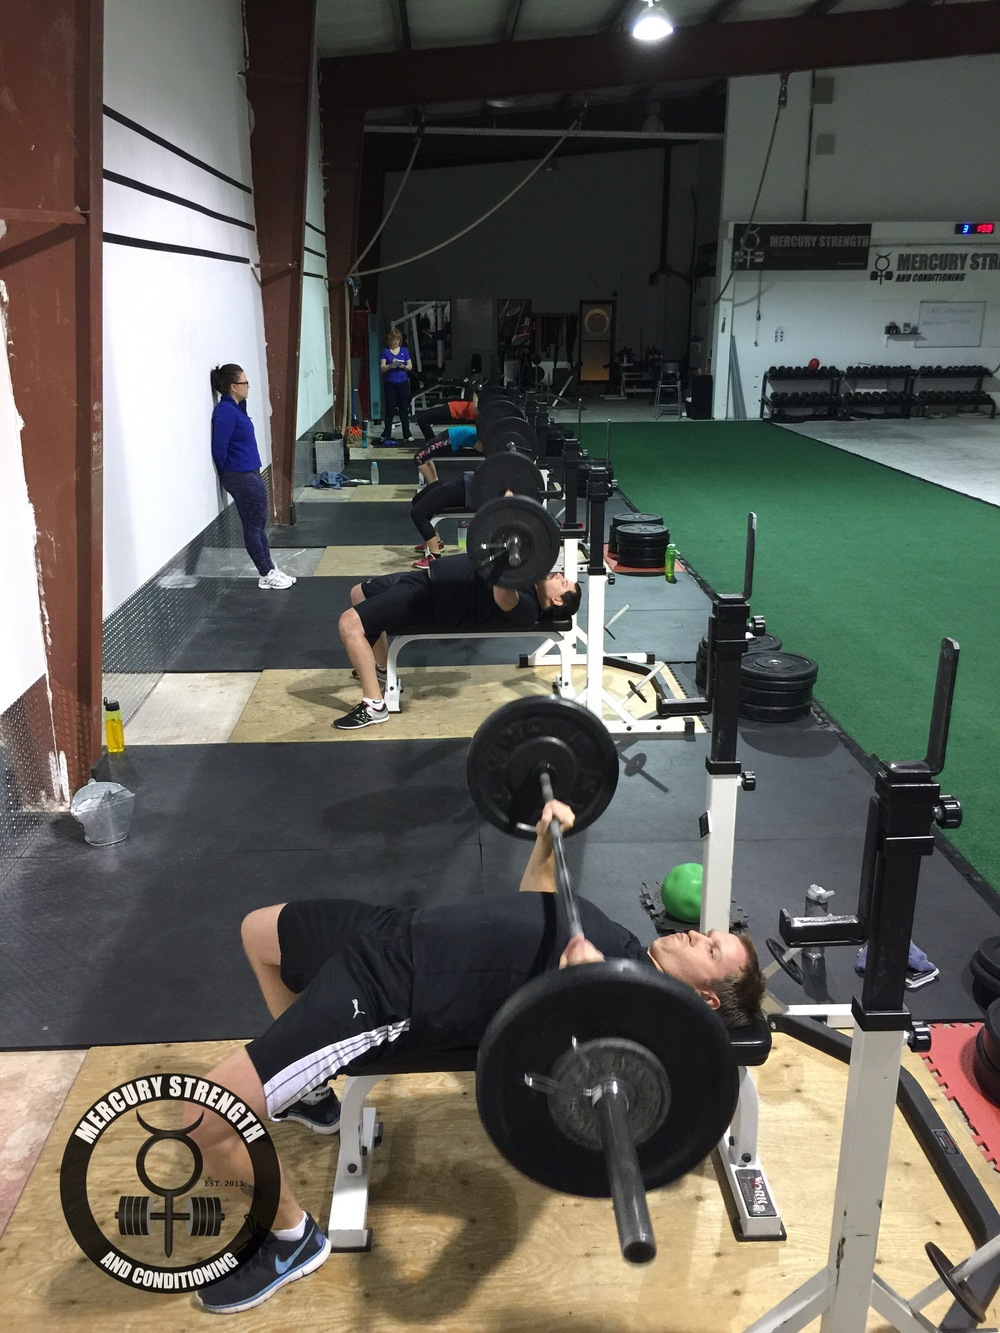 06:30 crew doing a set of 10 for bench press while Michelle supervises.